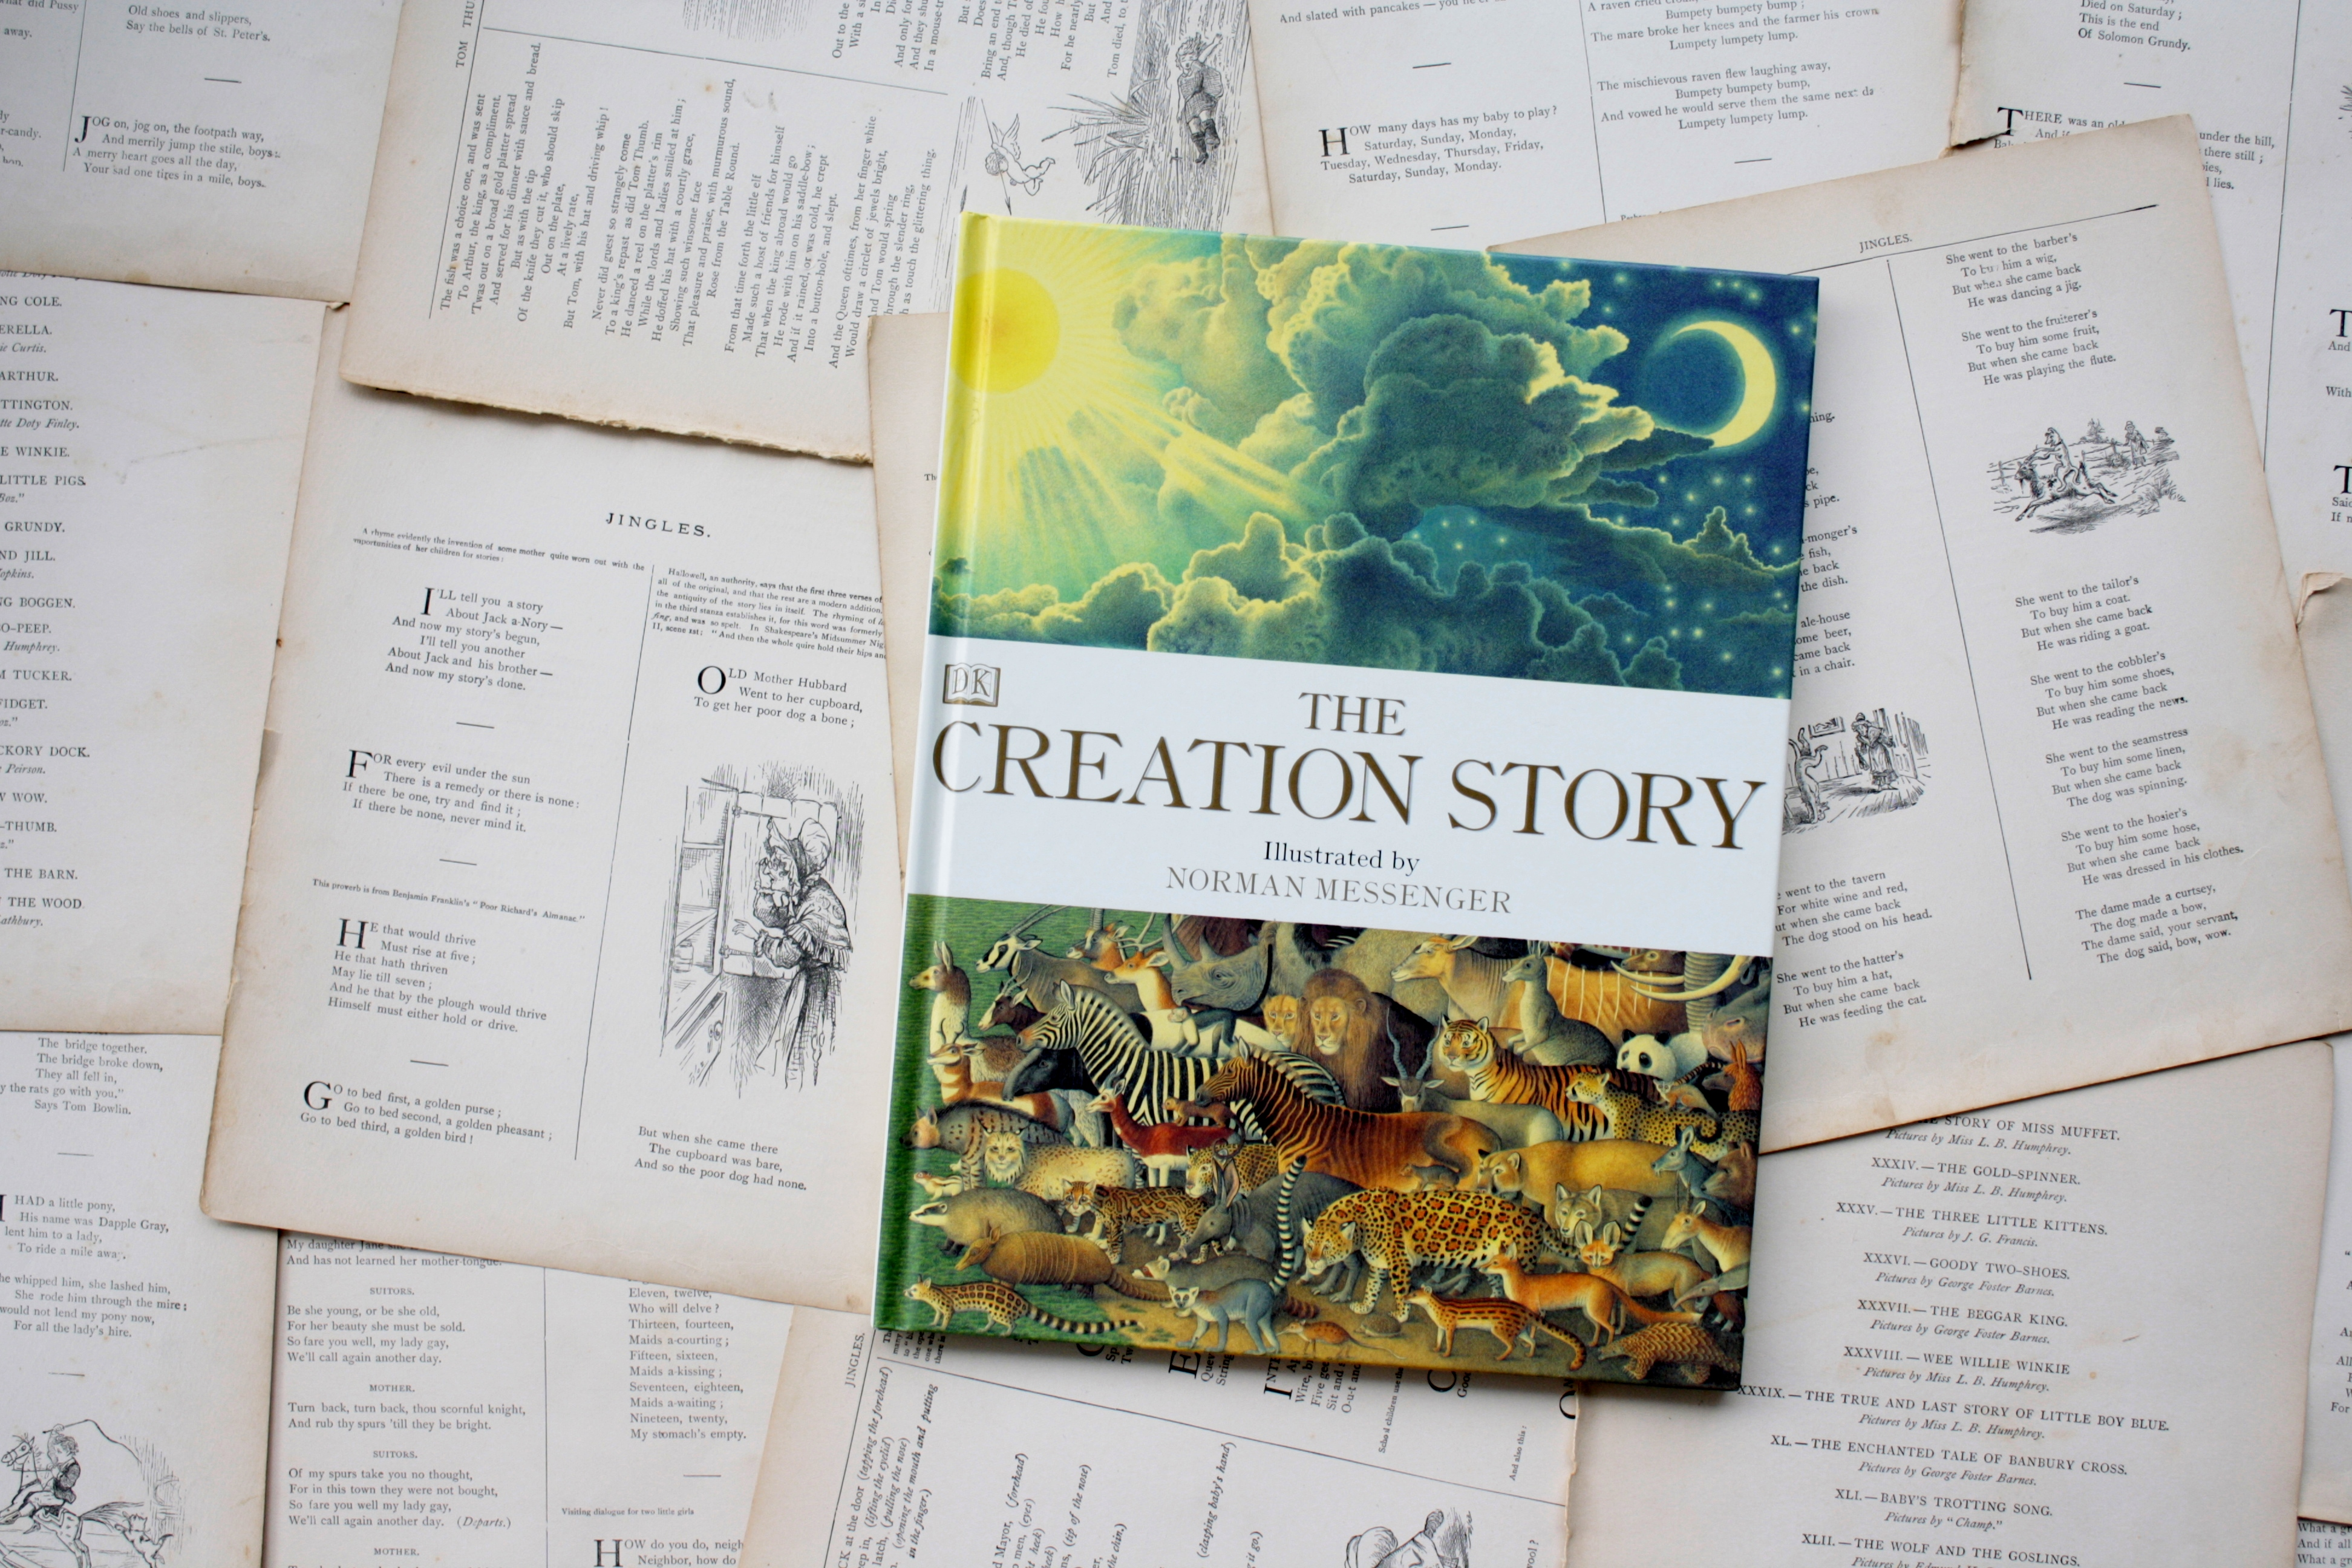 The Creation Story | Norman Messenger